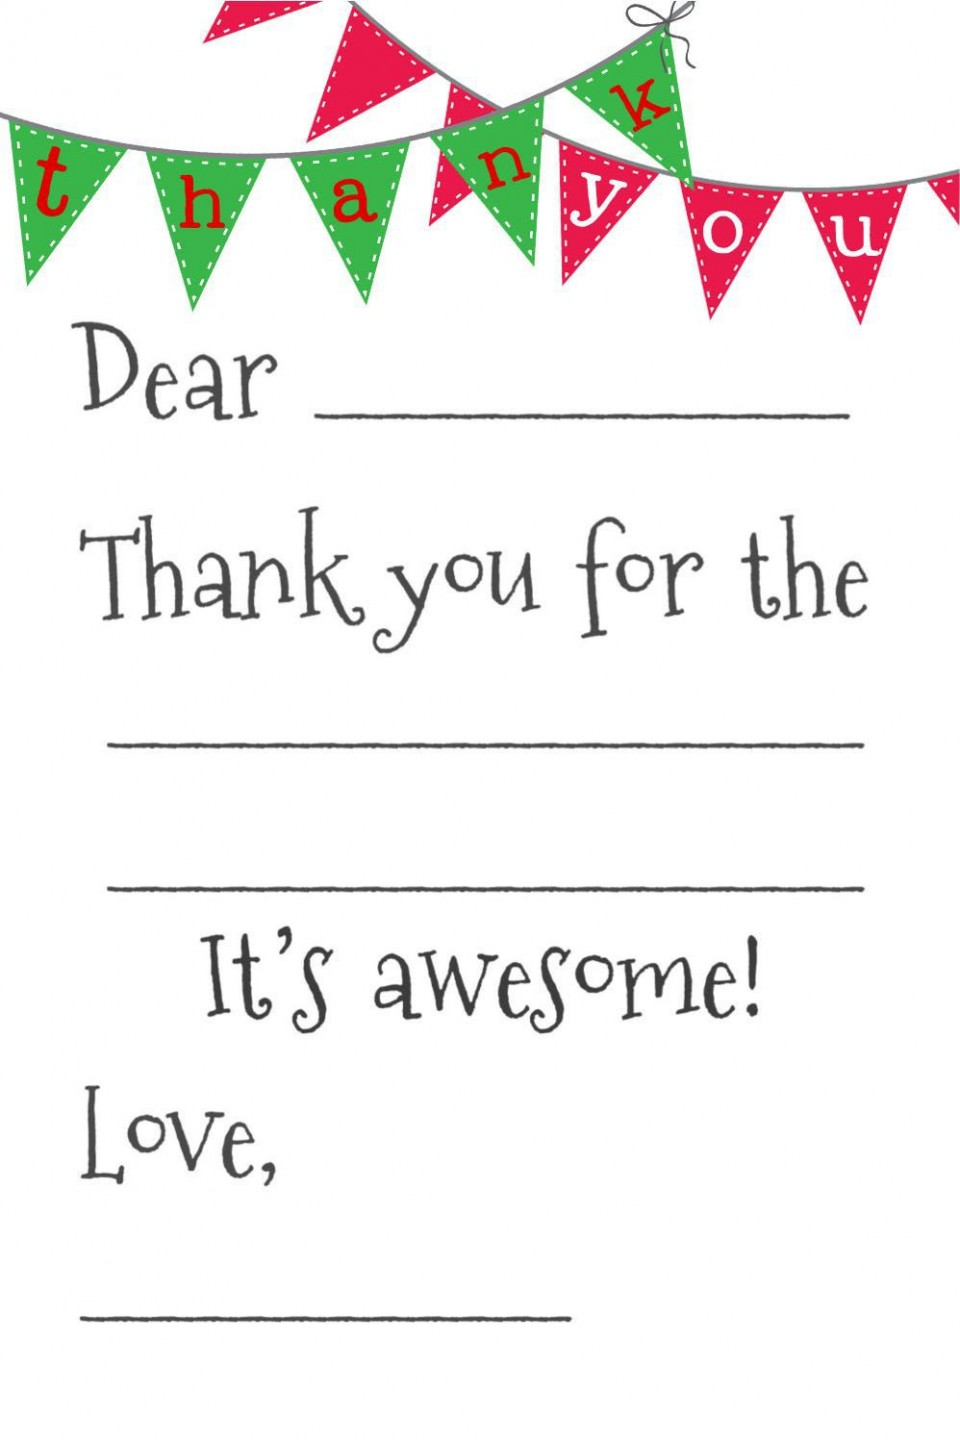 006 Marvelou Thank You Note Card Template Word Concept 960